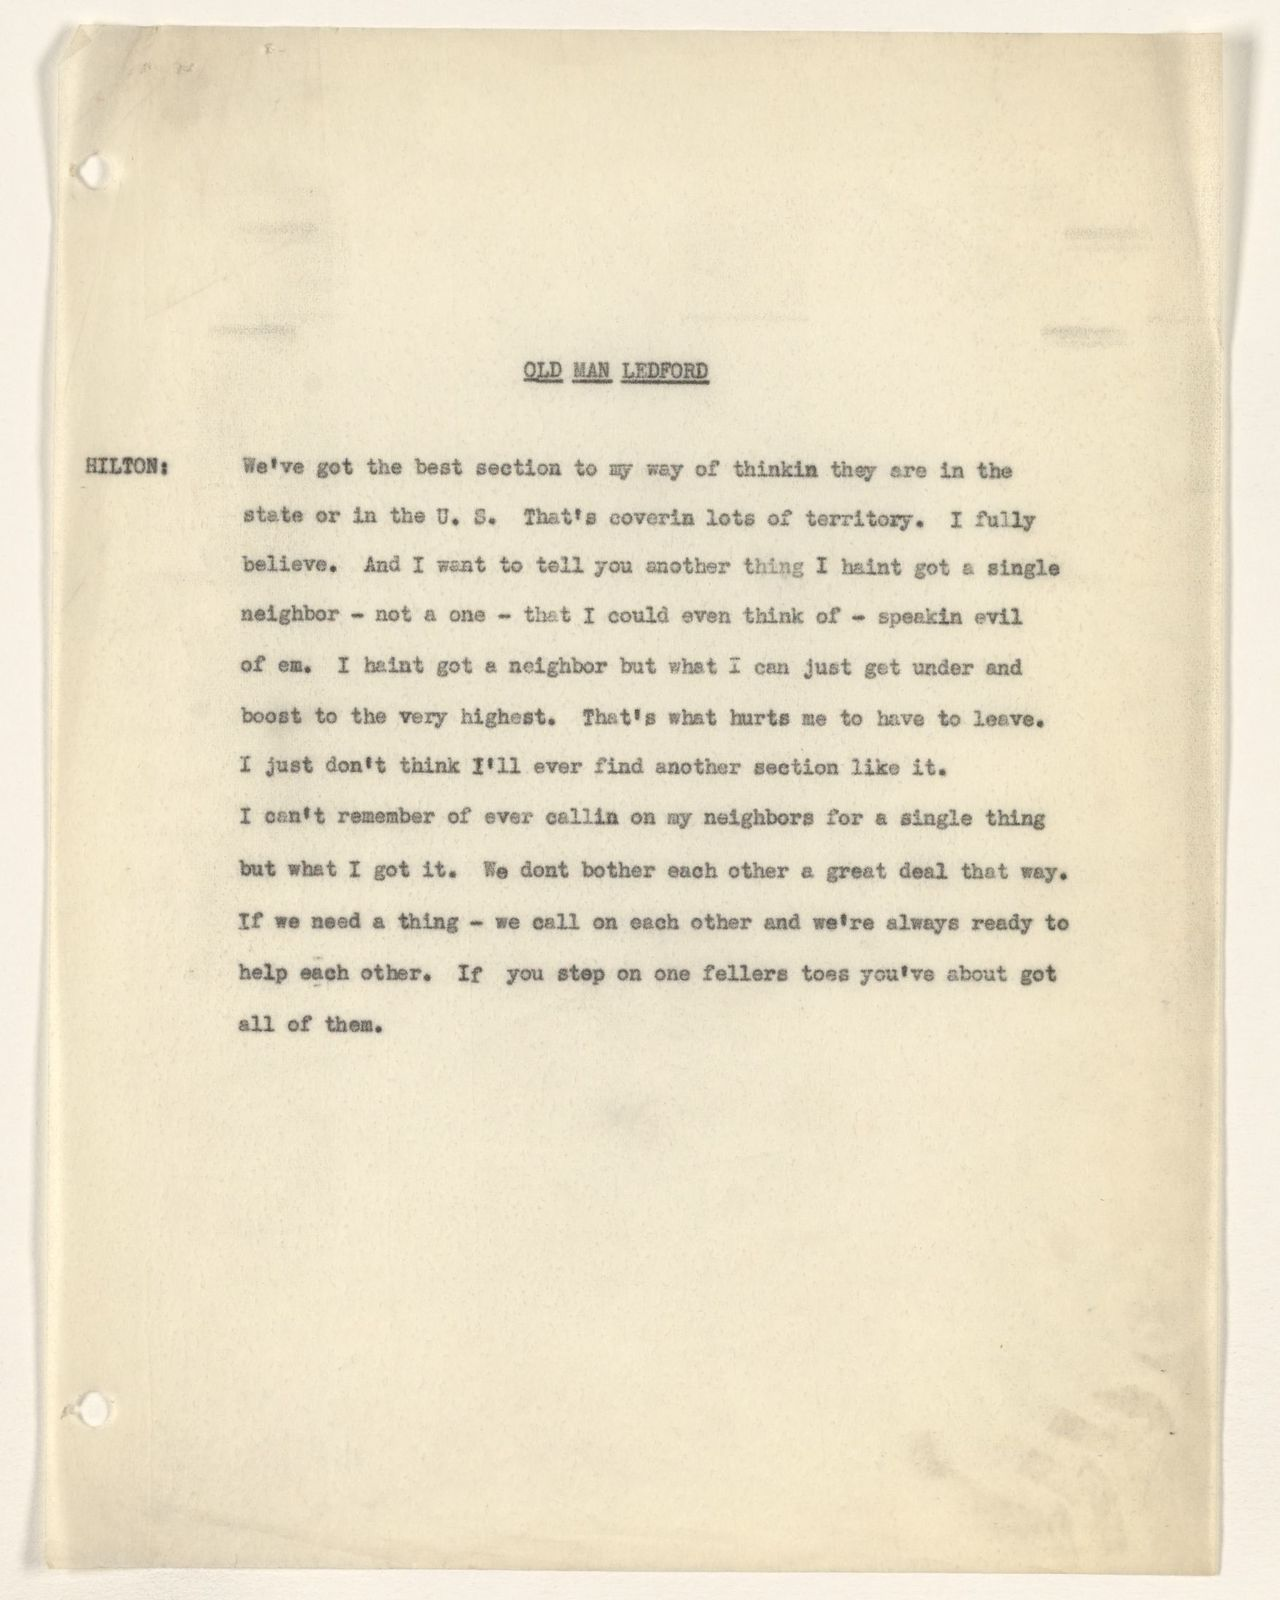 Alan Lomax Collection, Manuscripts, Eelsfoot, 1950s